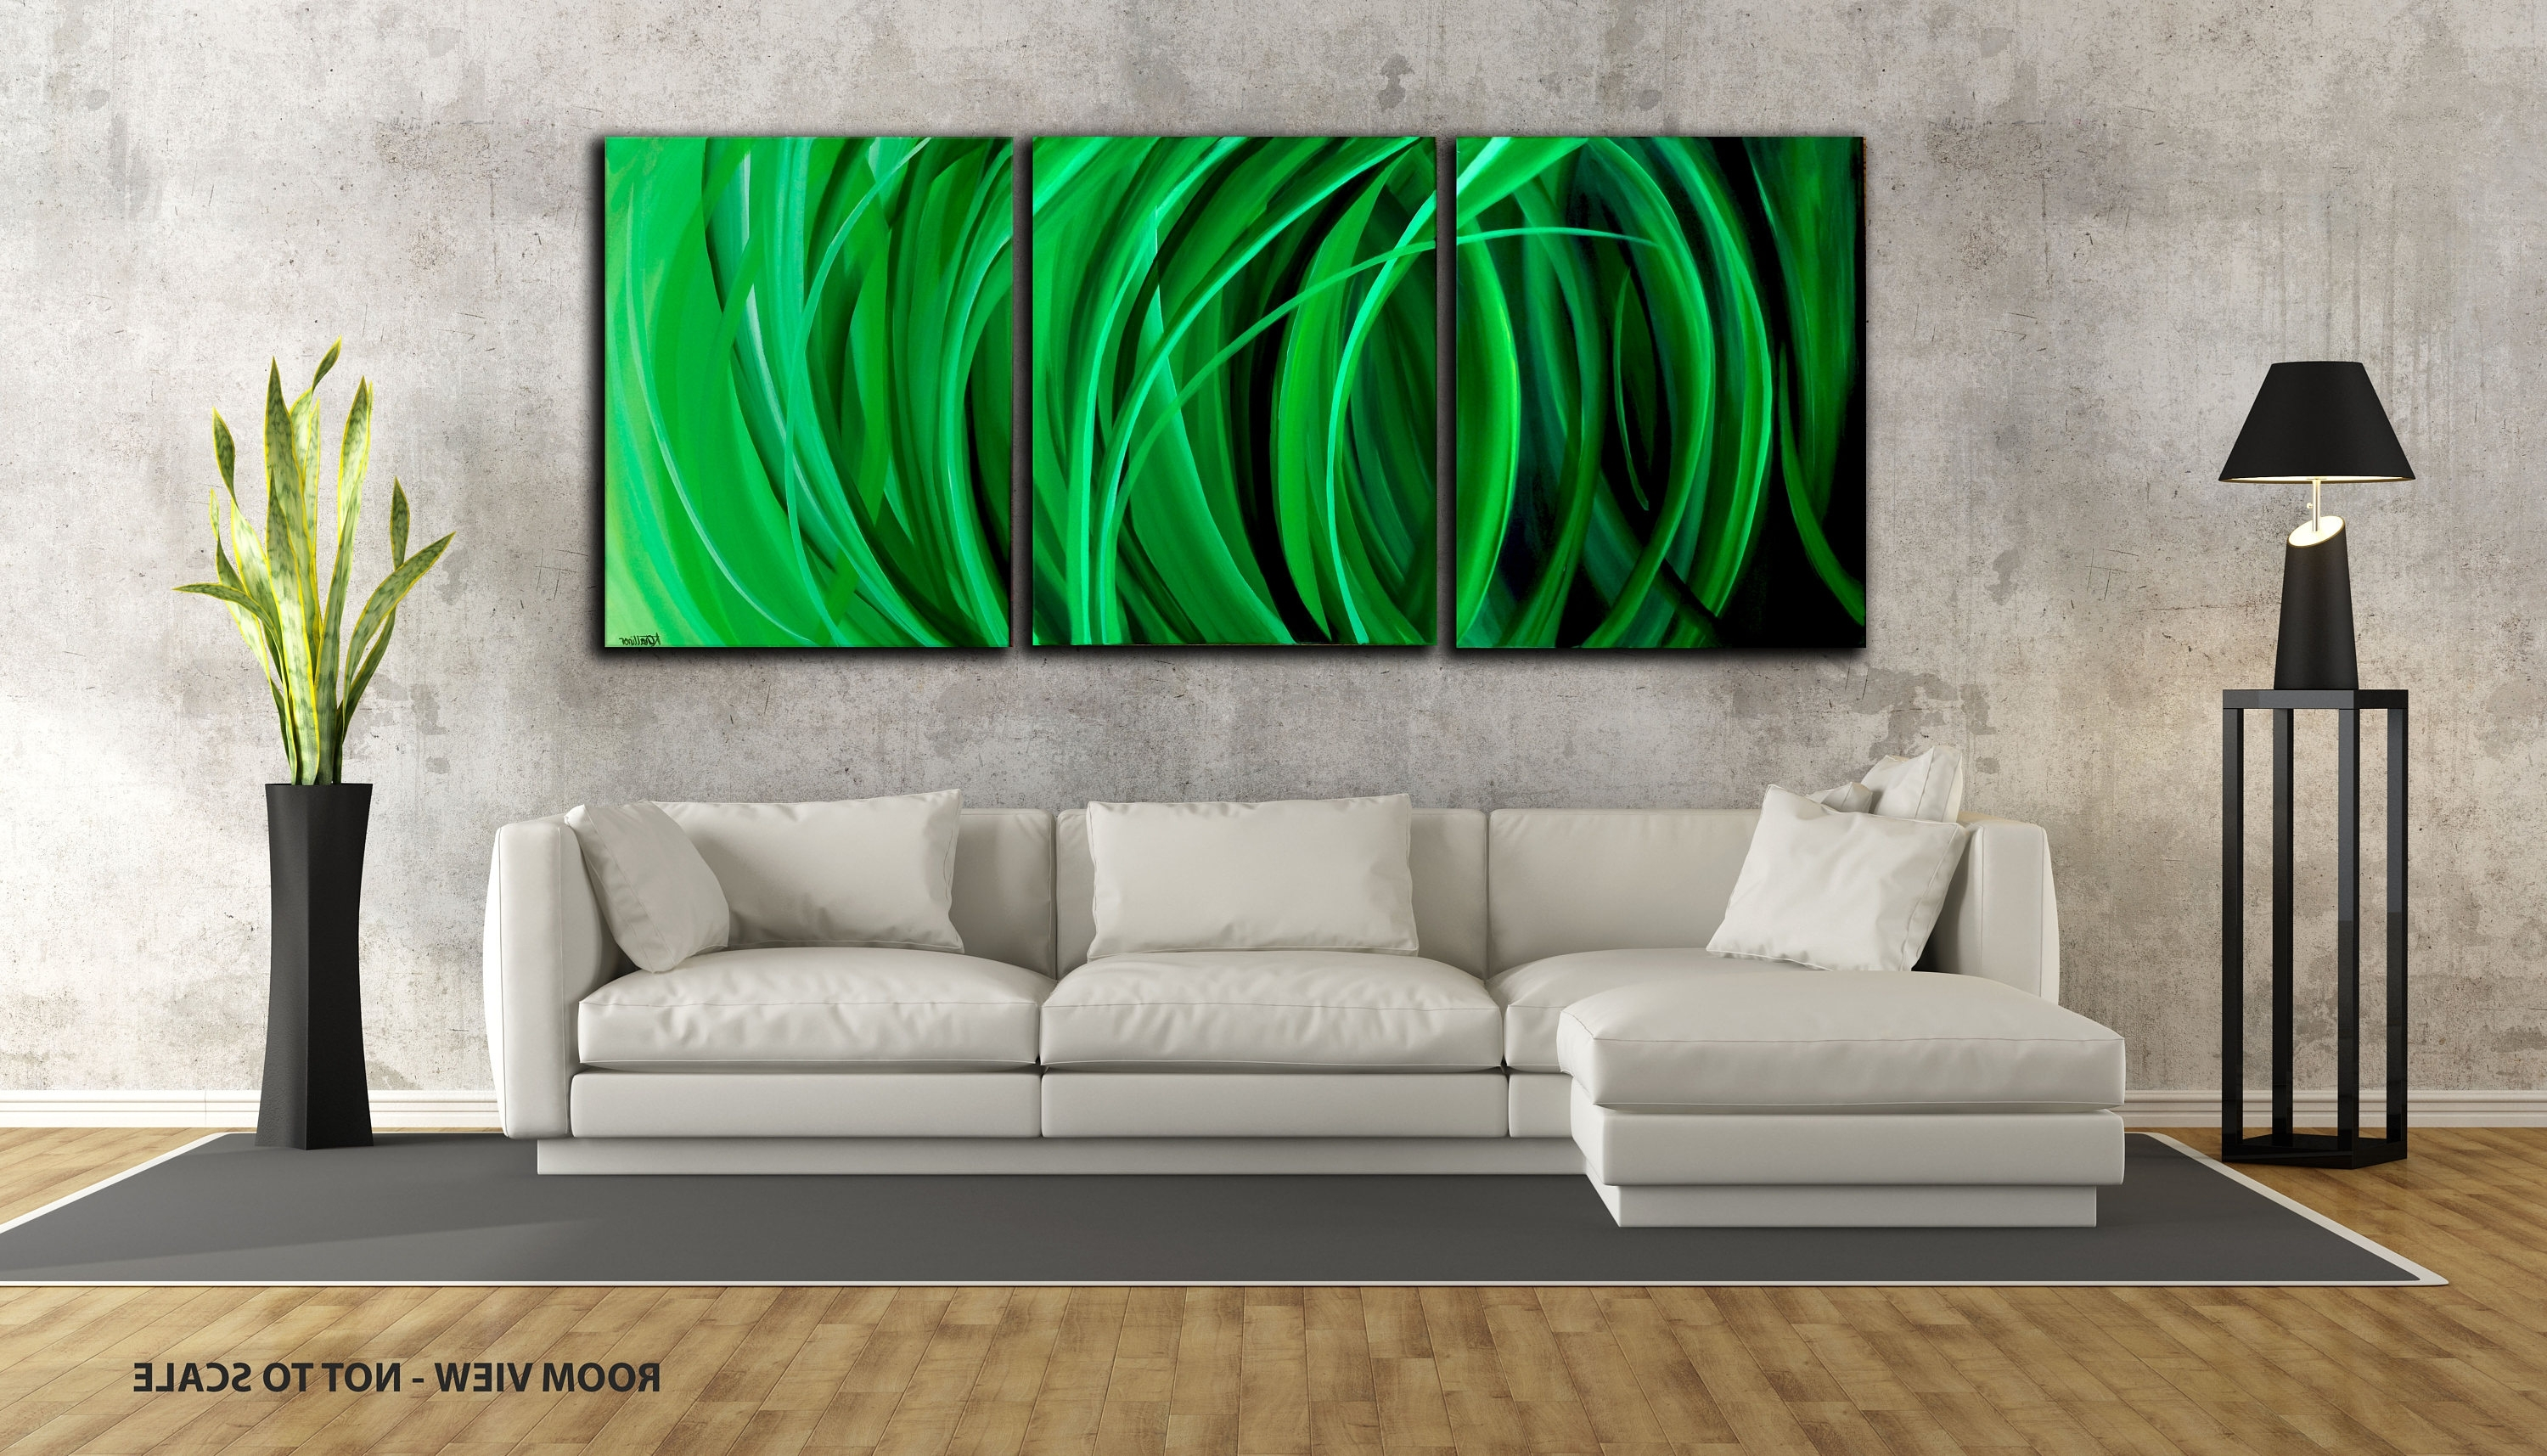 Latest 48 Large, Original Abstract Painting, Canvas, Wall Art, Modern With Large Green Wall Art (View 9 of 15)